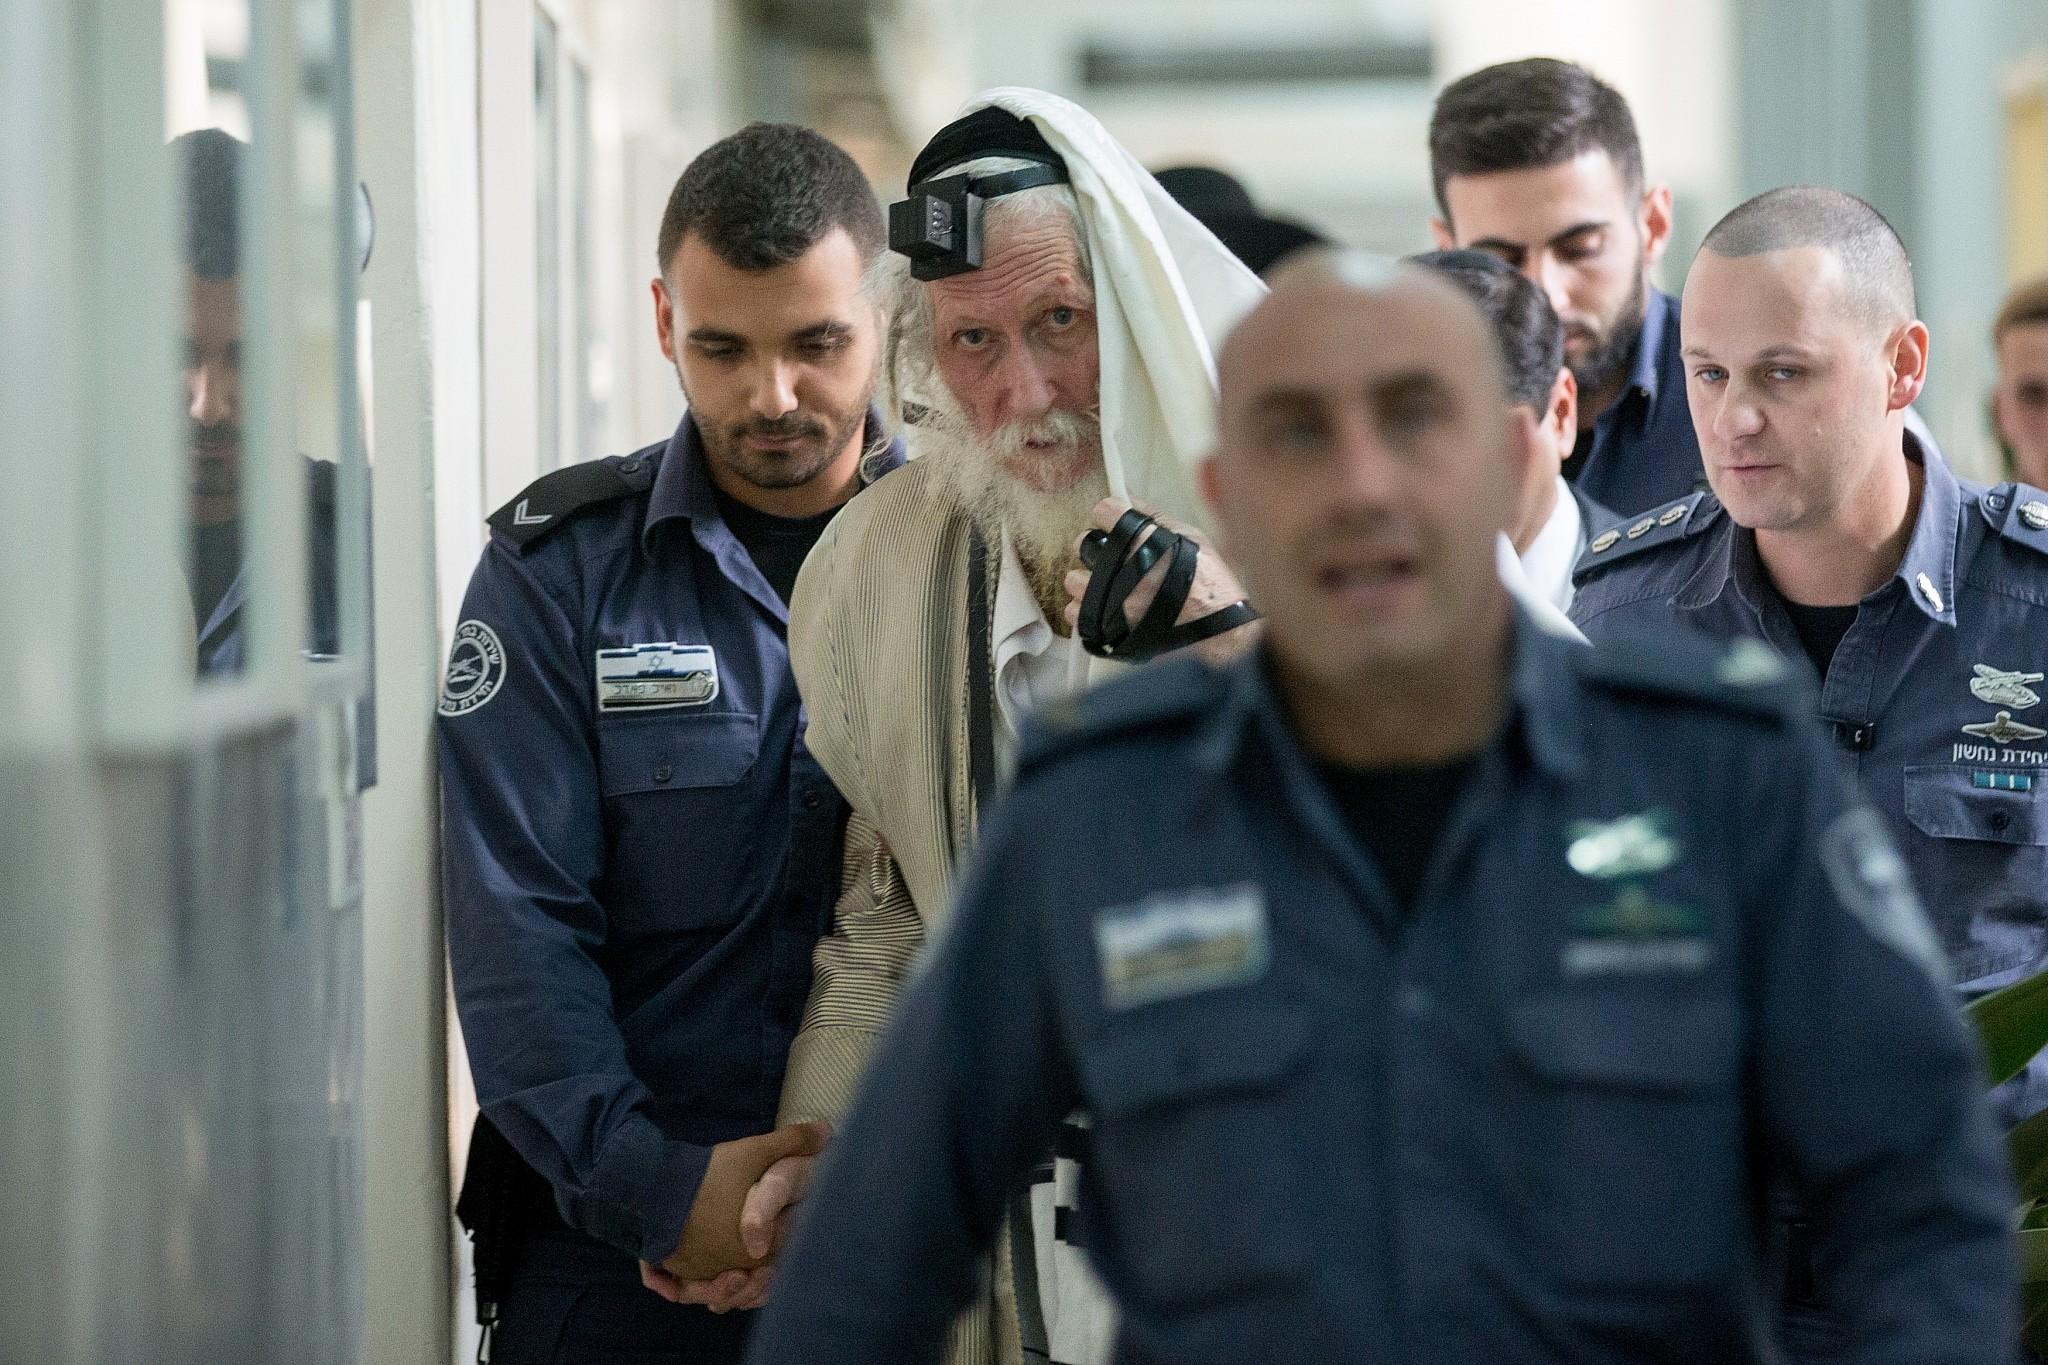 Convicted sex offender rabbi approved to make trip abroad